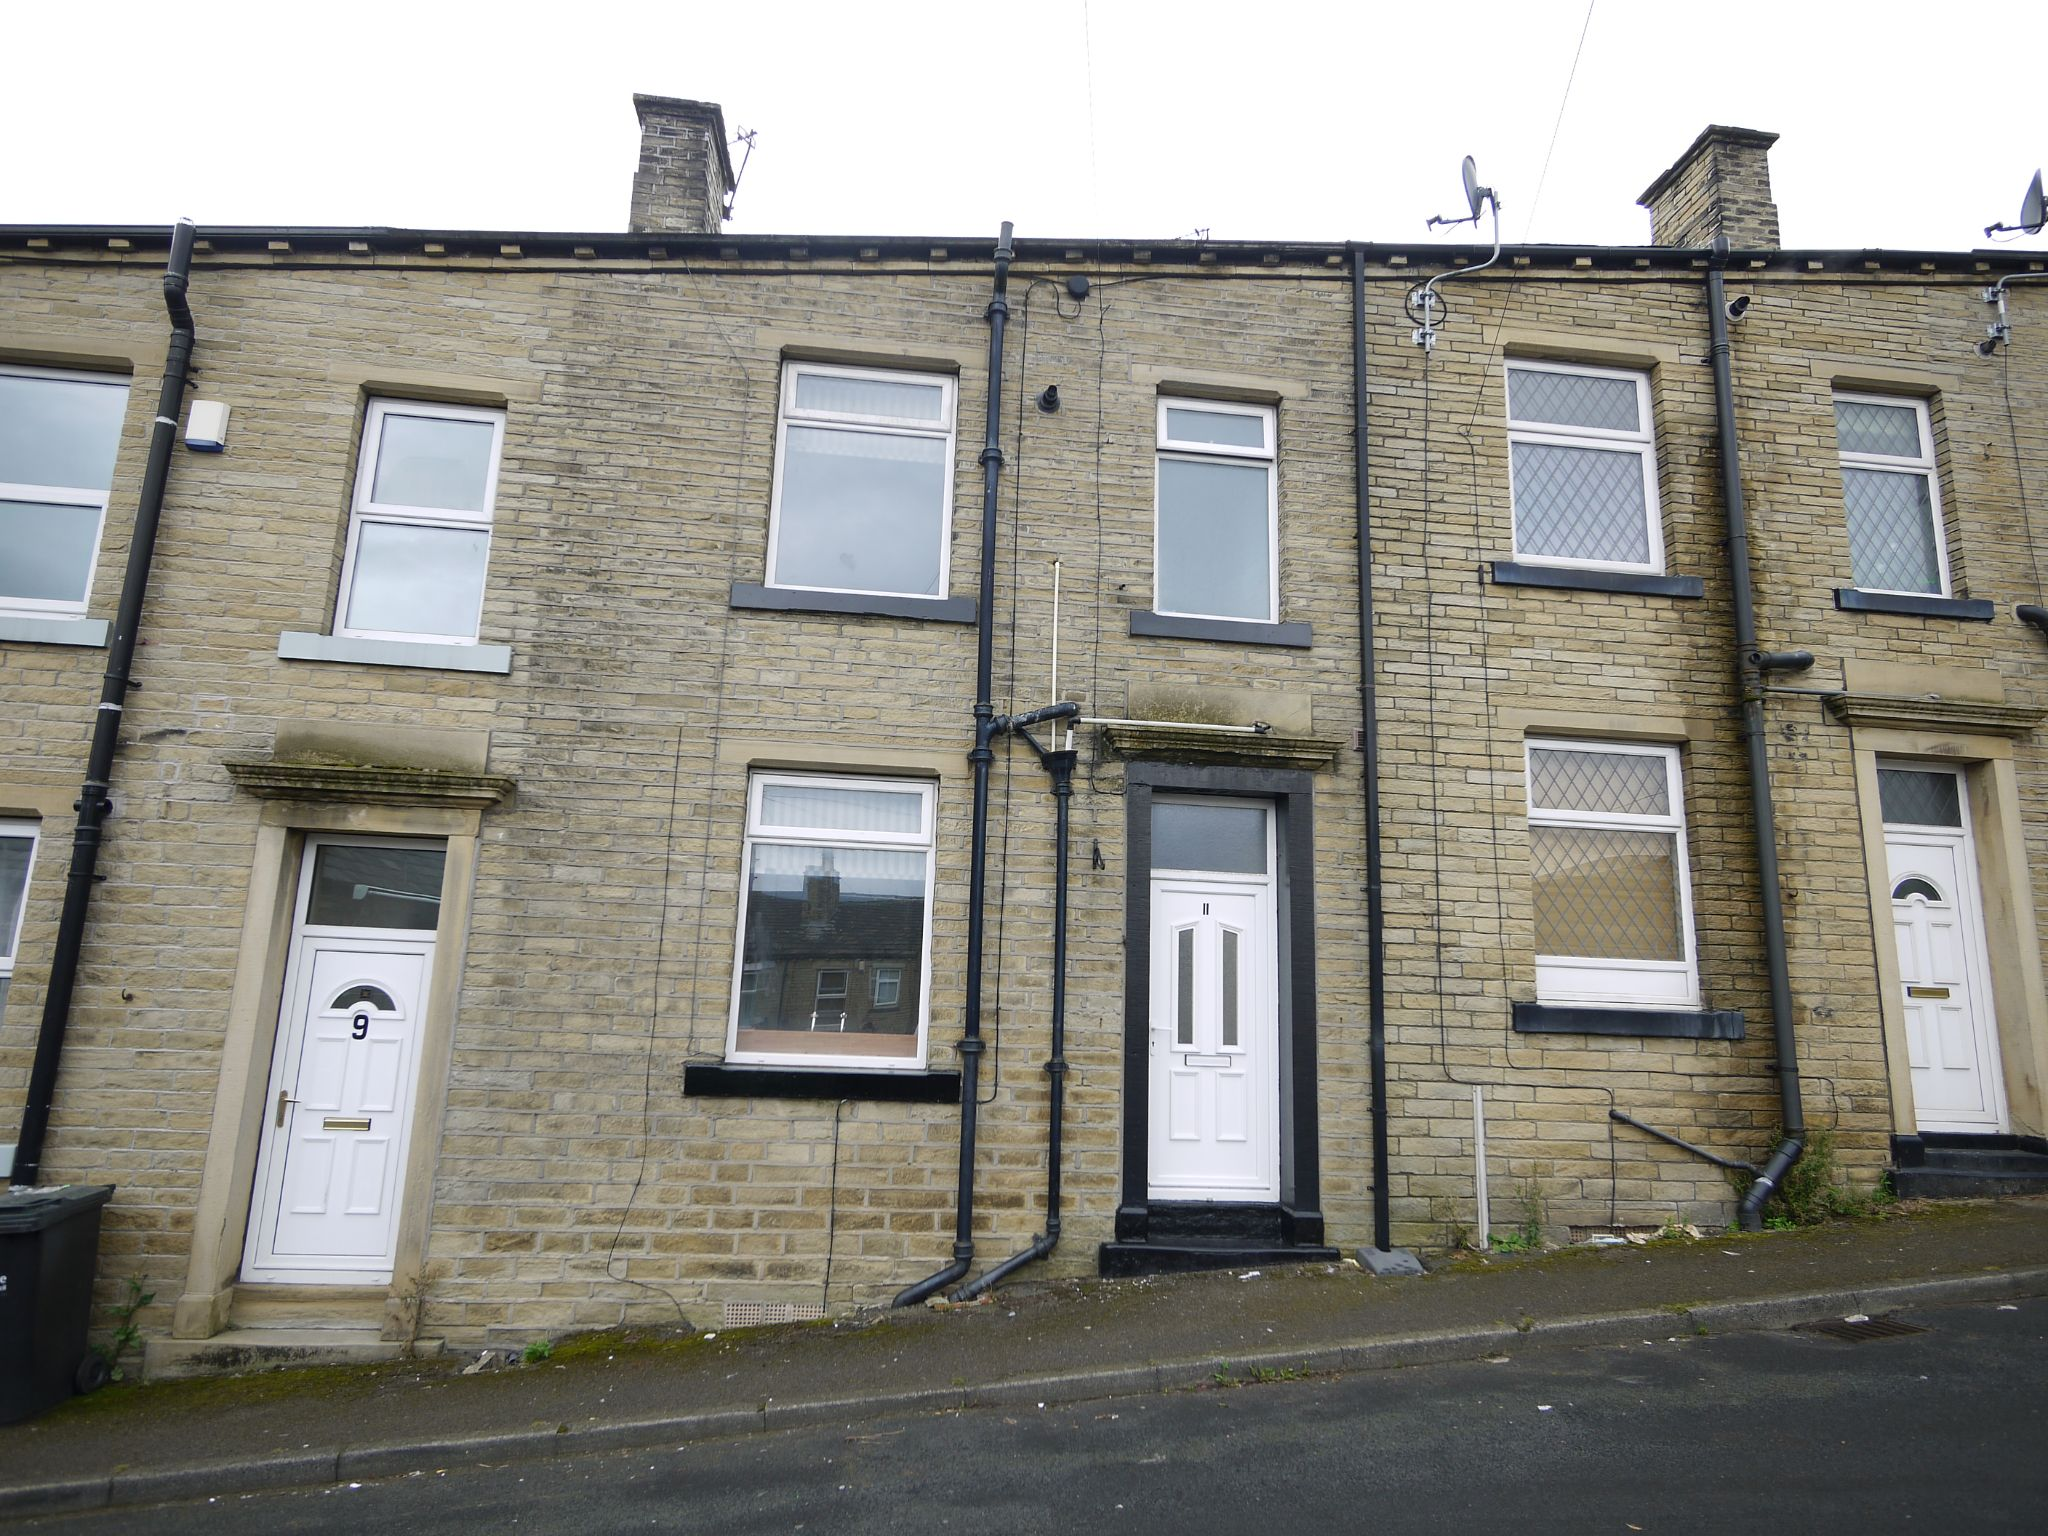 1 bedroom mid terraced house SSTC in Brighouse - Photograph 1.